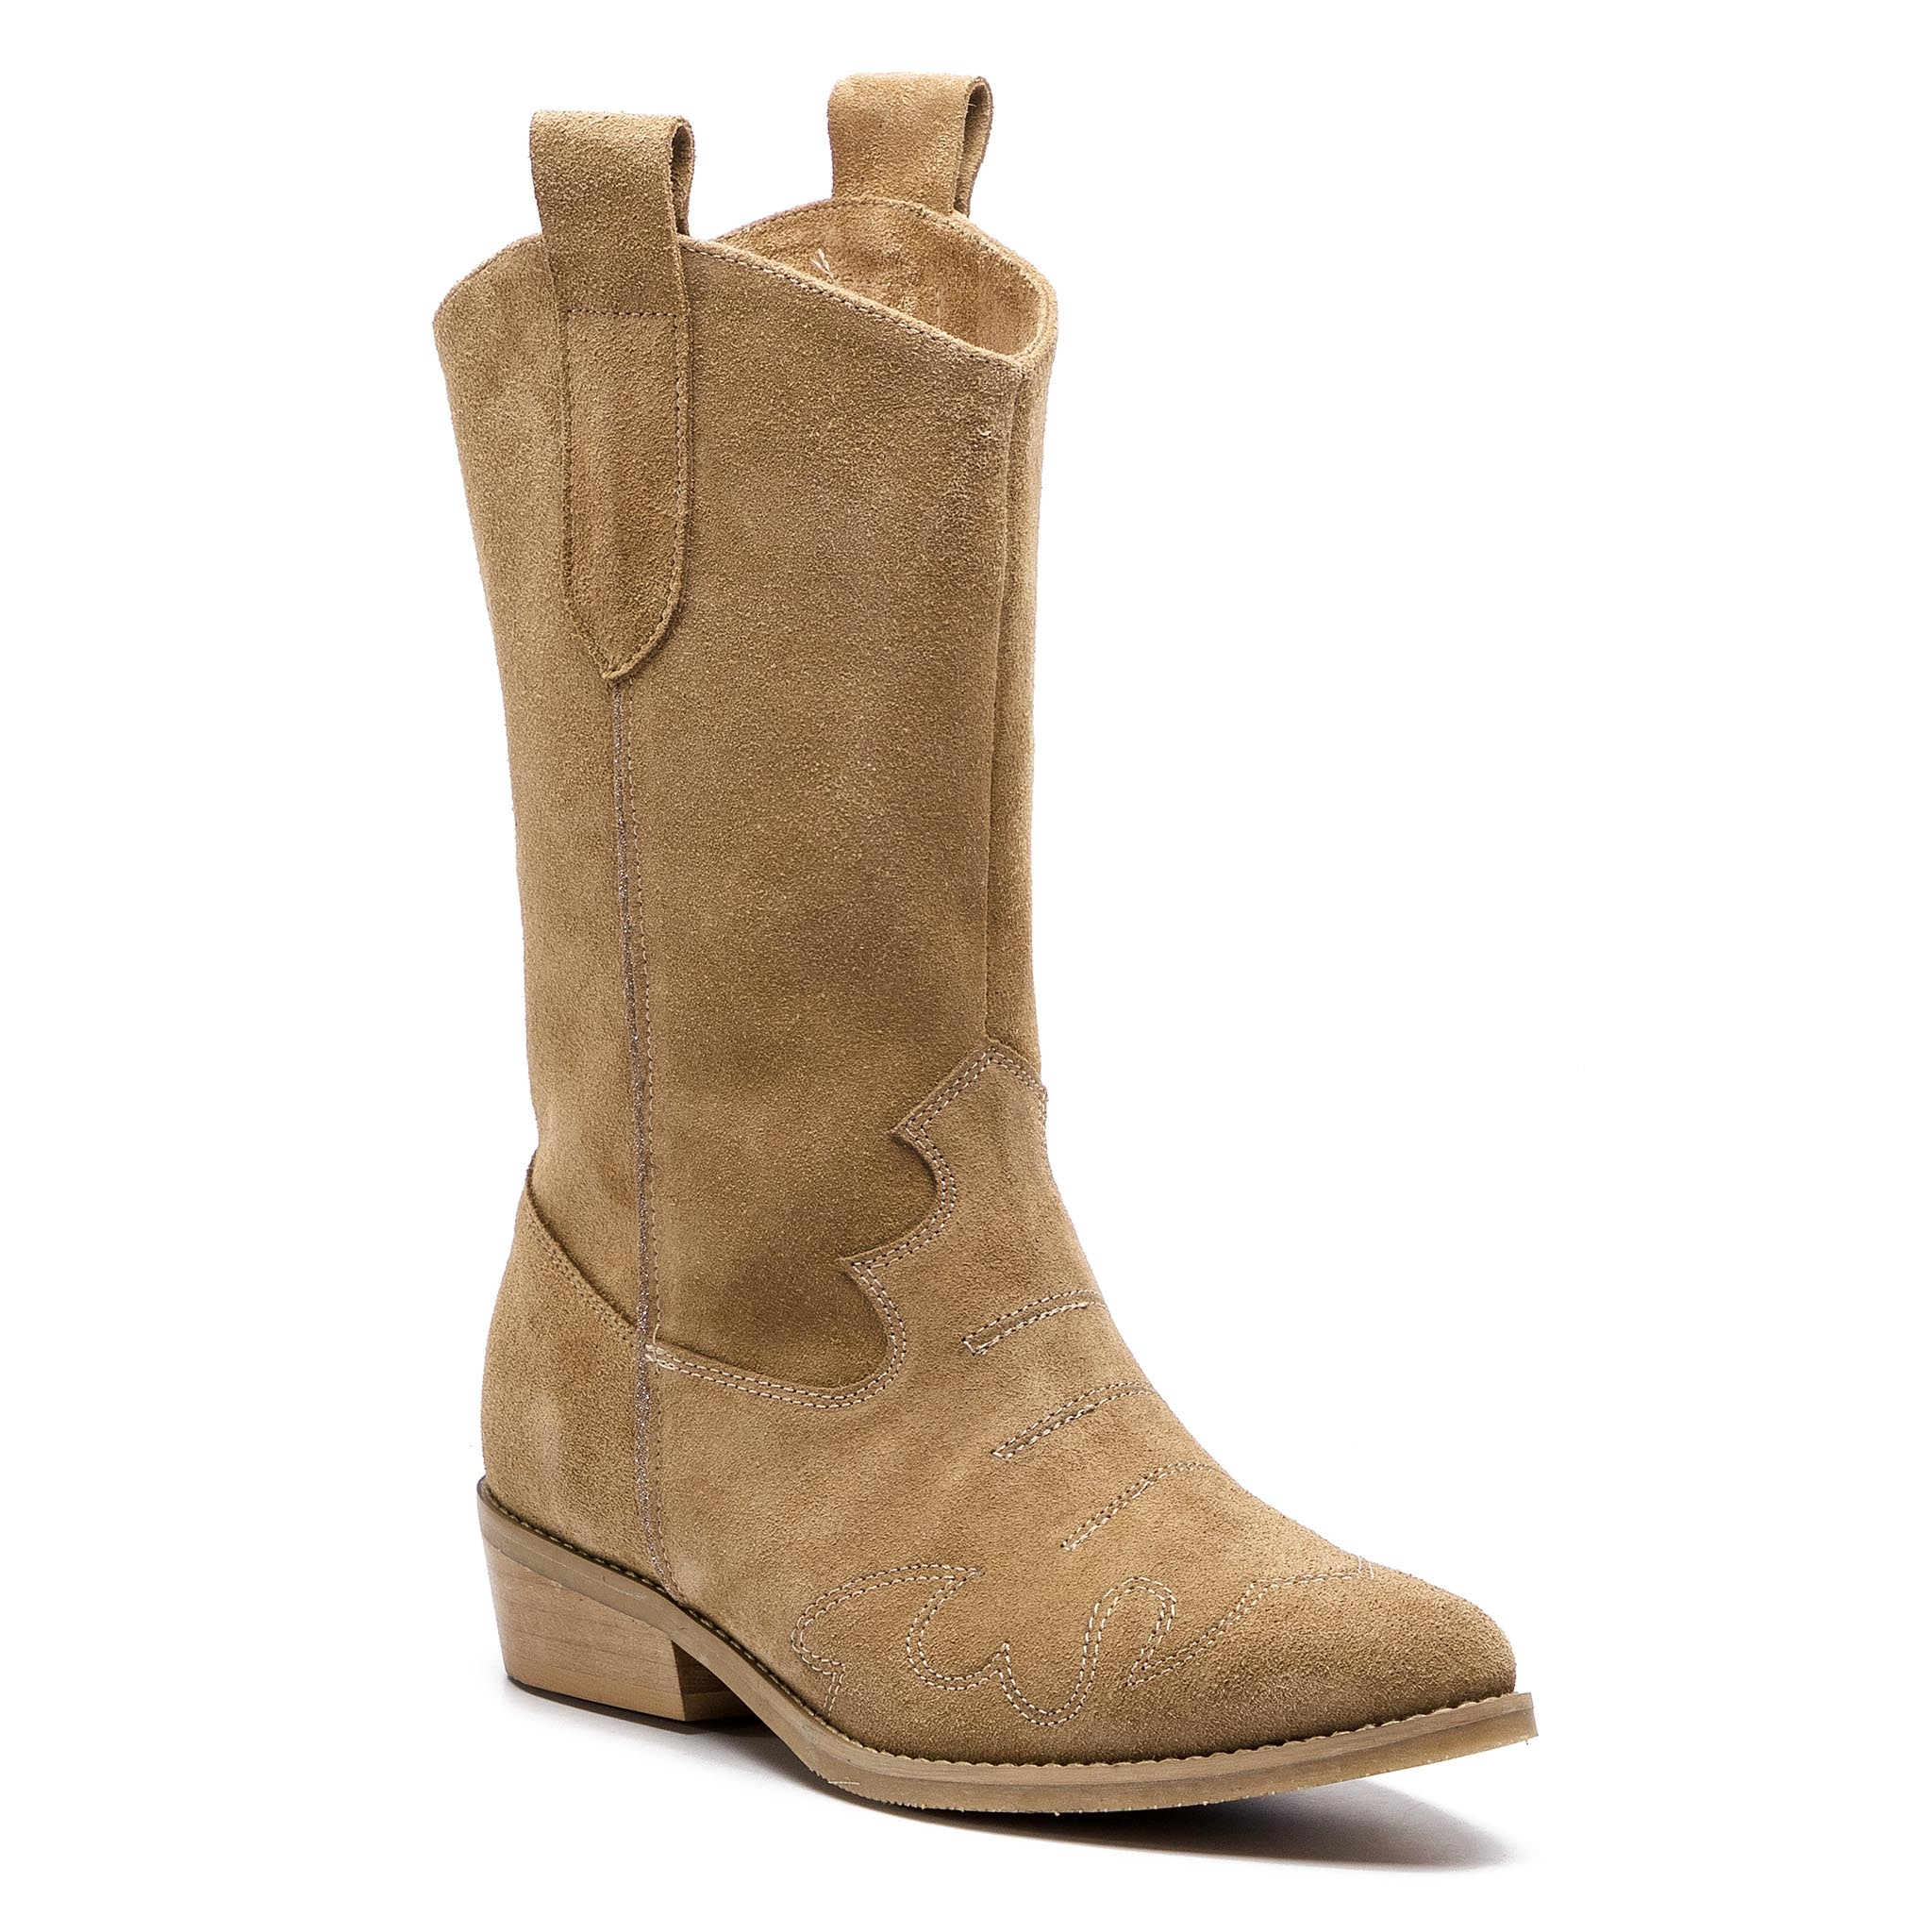 Botine L37 - On The Rocks SW15 Brown